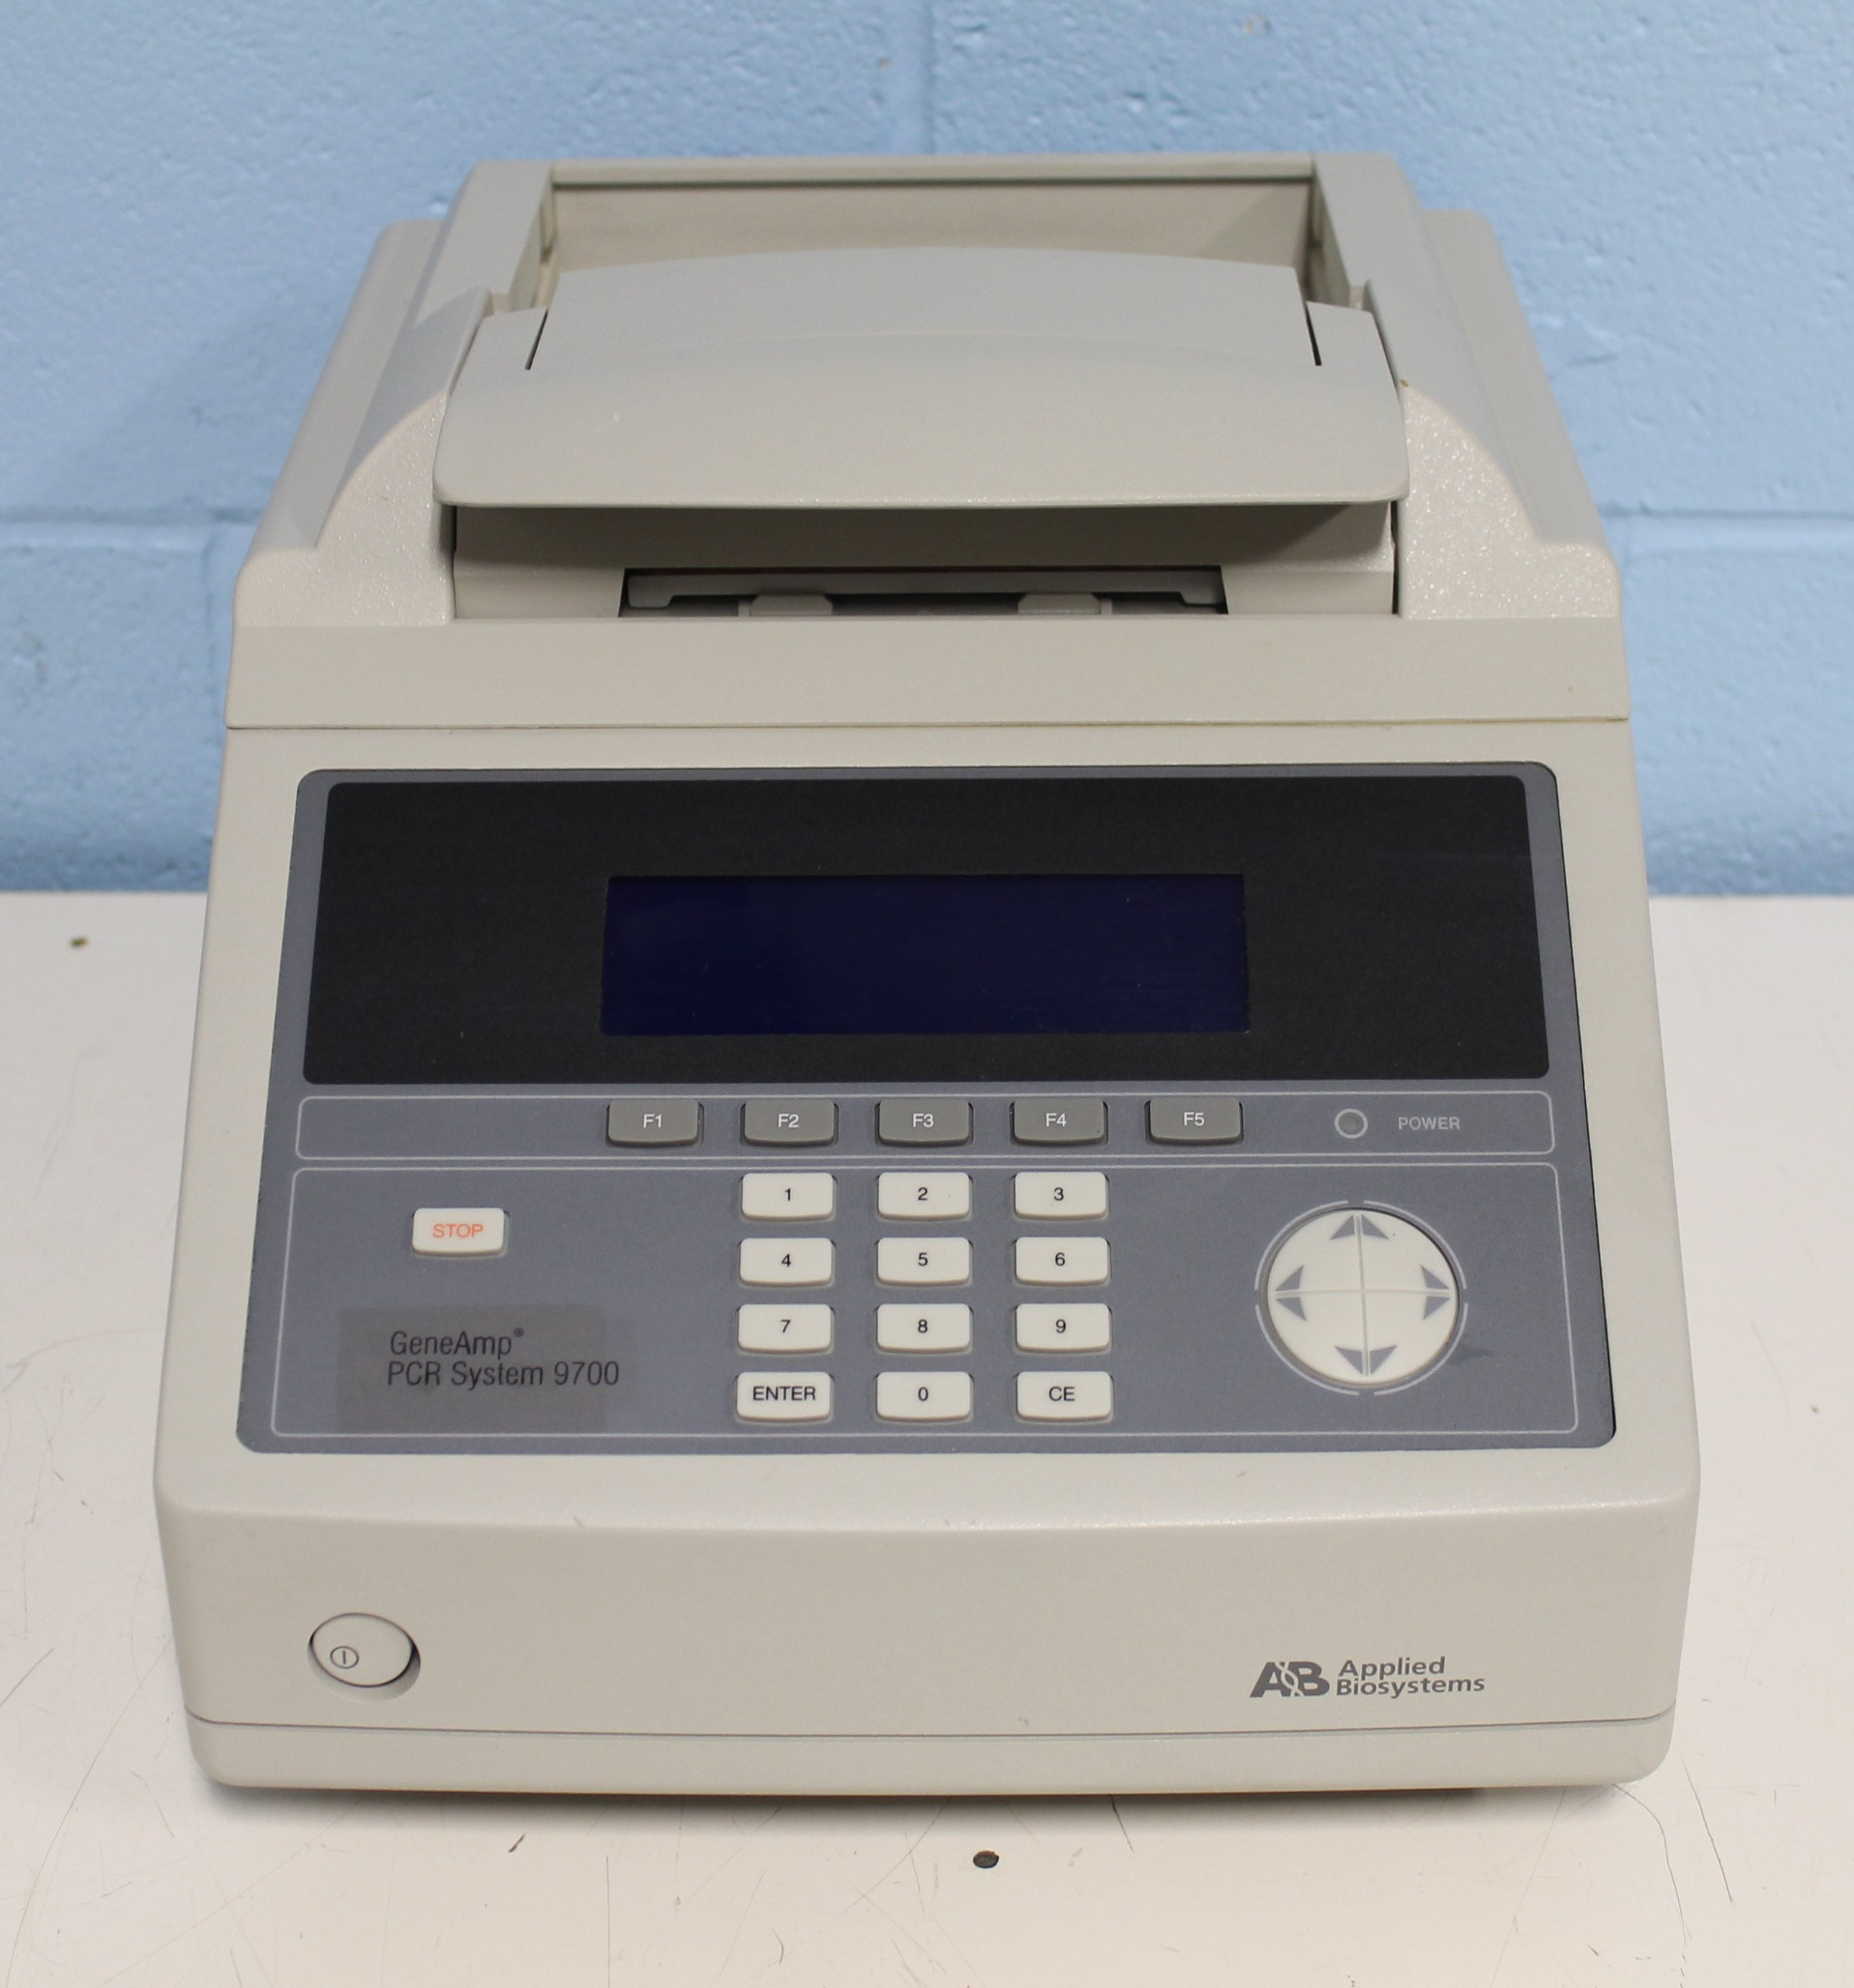 Applied Biosystems GeneAmp PCR System 9700 with Dual 96-Well Aluminum Sample Block Module  Image